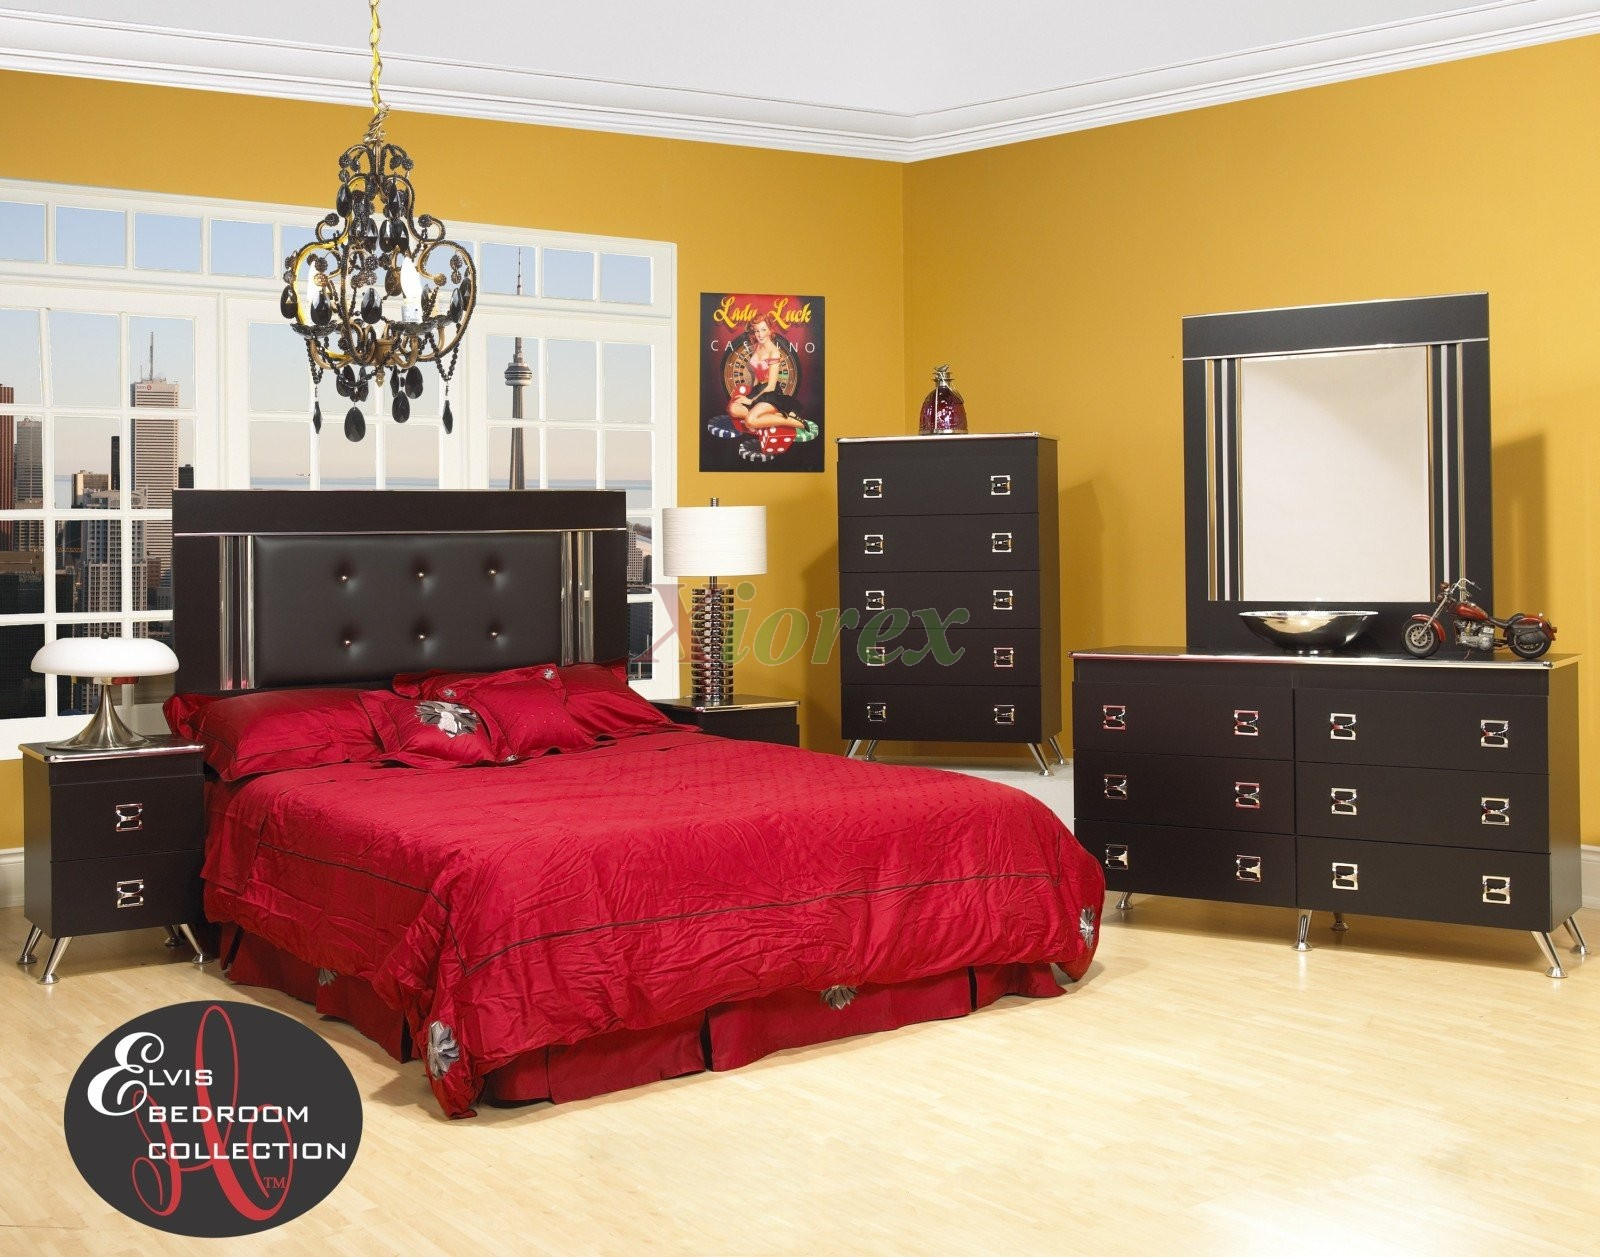 Black Bedroom Set White Bedroom Set Life Line Elvis Bed Suite Is A Modern Bedroom Collection That Is Made In Canada From High Quality Engineered Wood